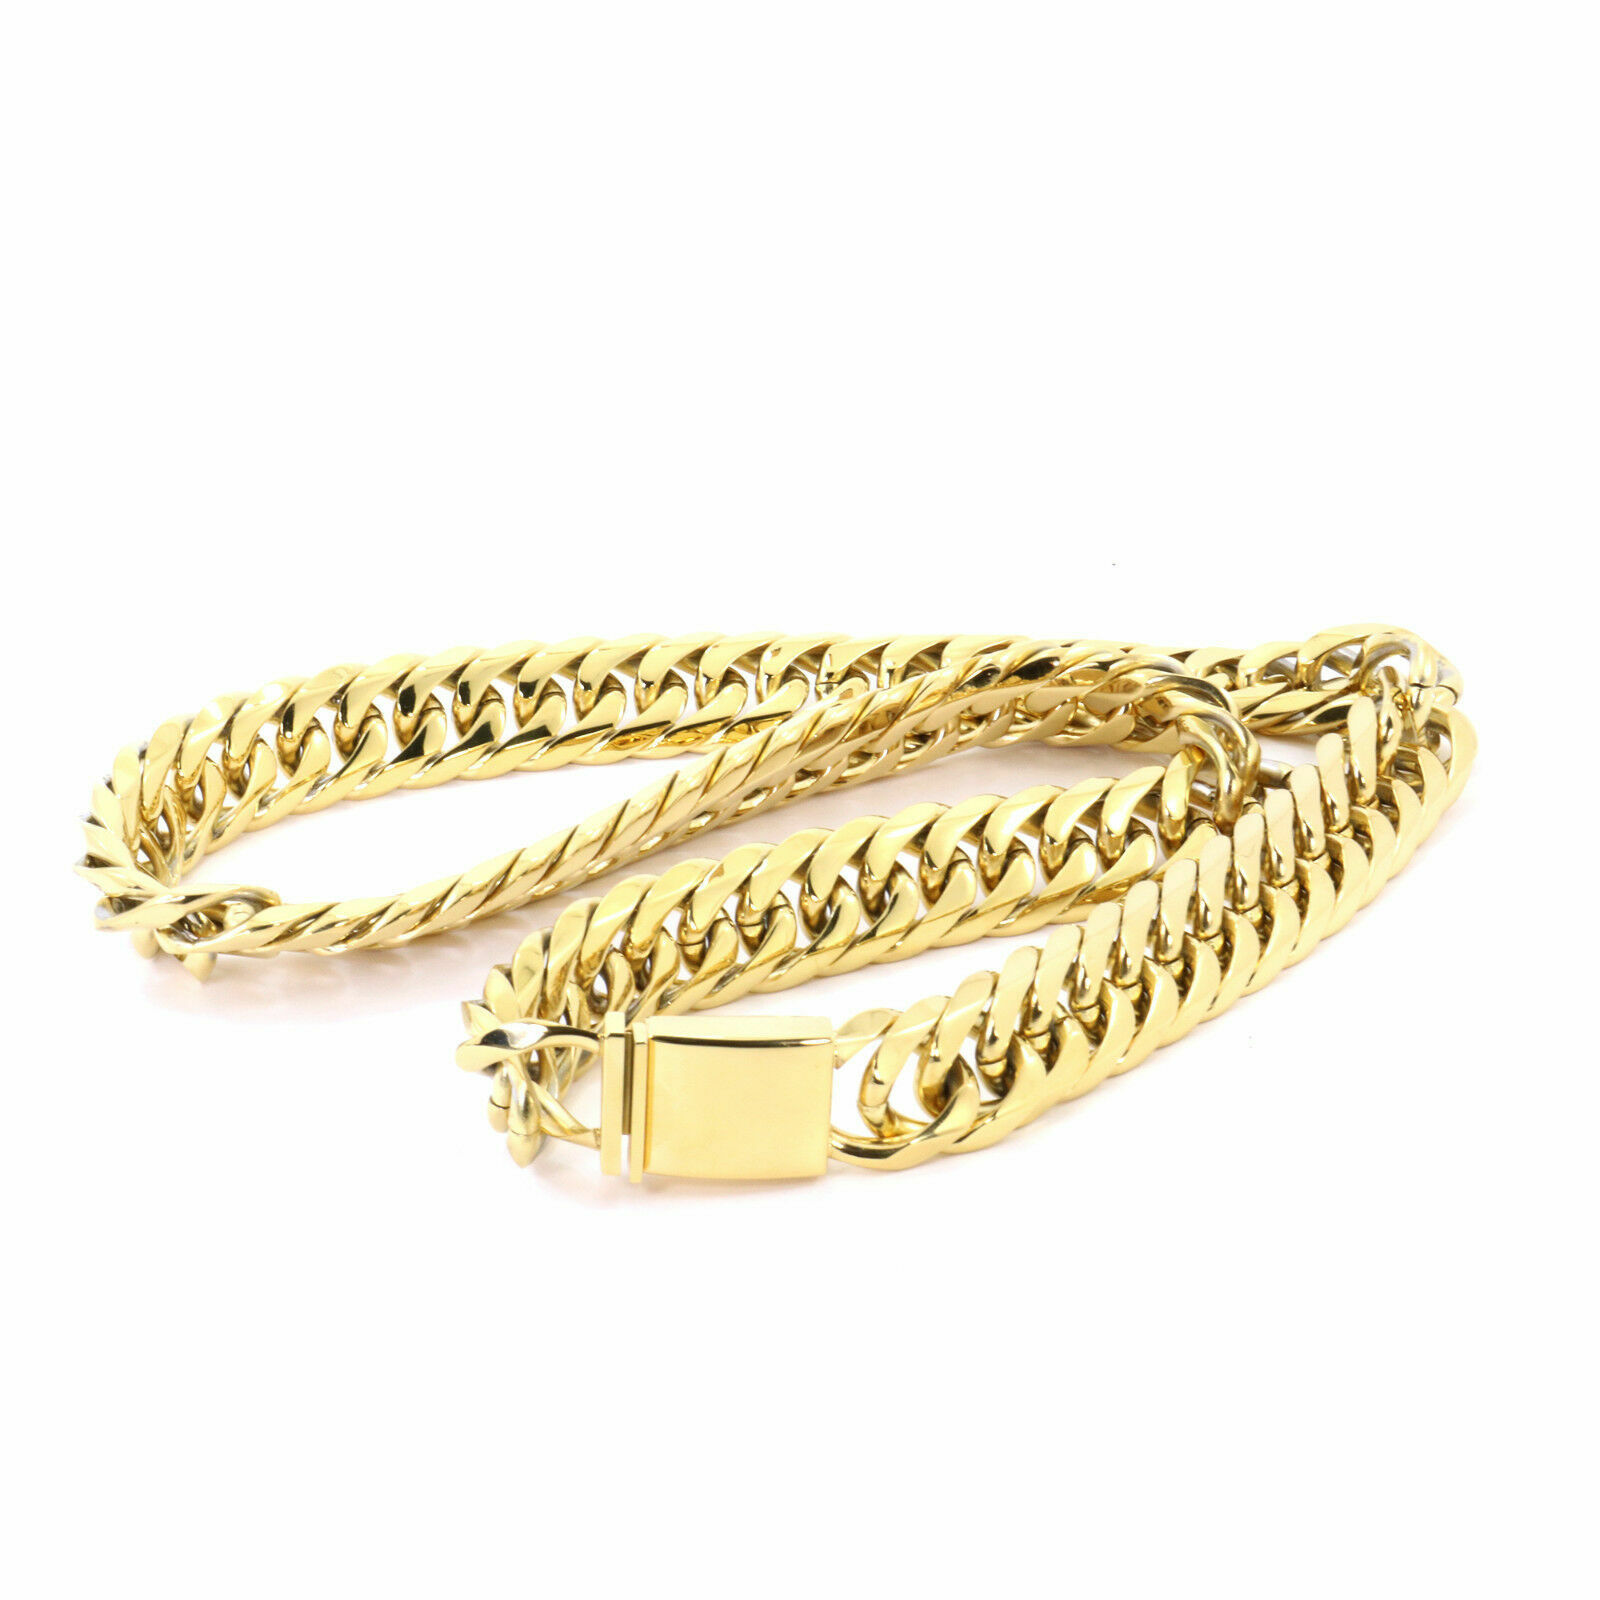 SOLID 14K YELLOW GOLD FINISH THICK HEAVY MIAMI CUBAN TIGHT LINK CHAIN 21MM JayZ